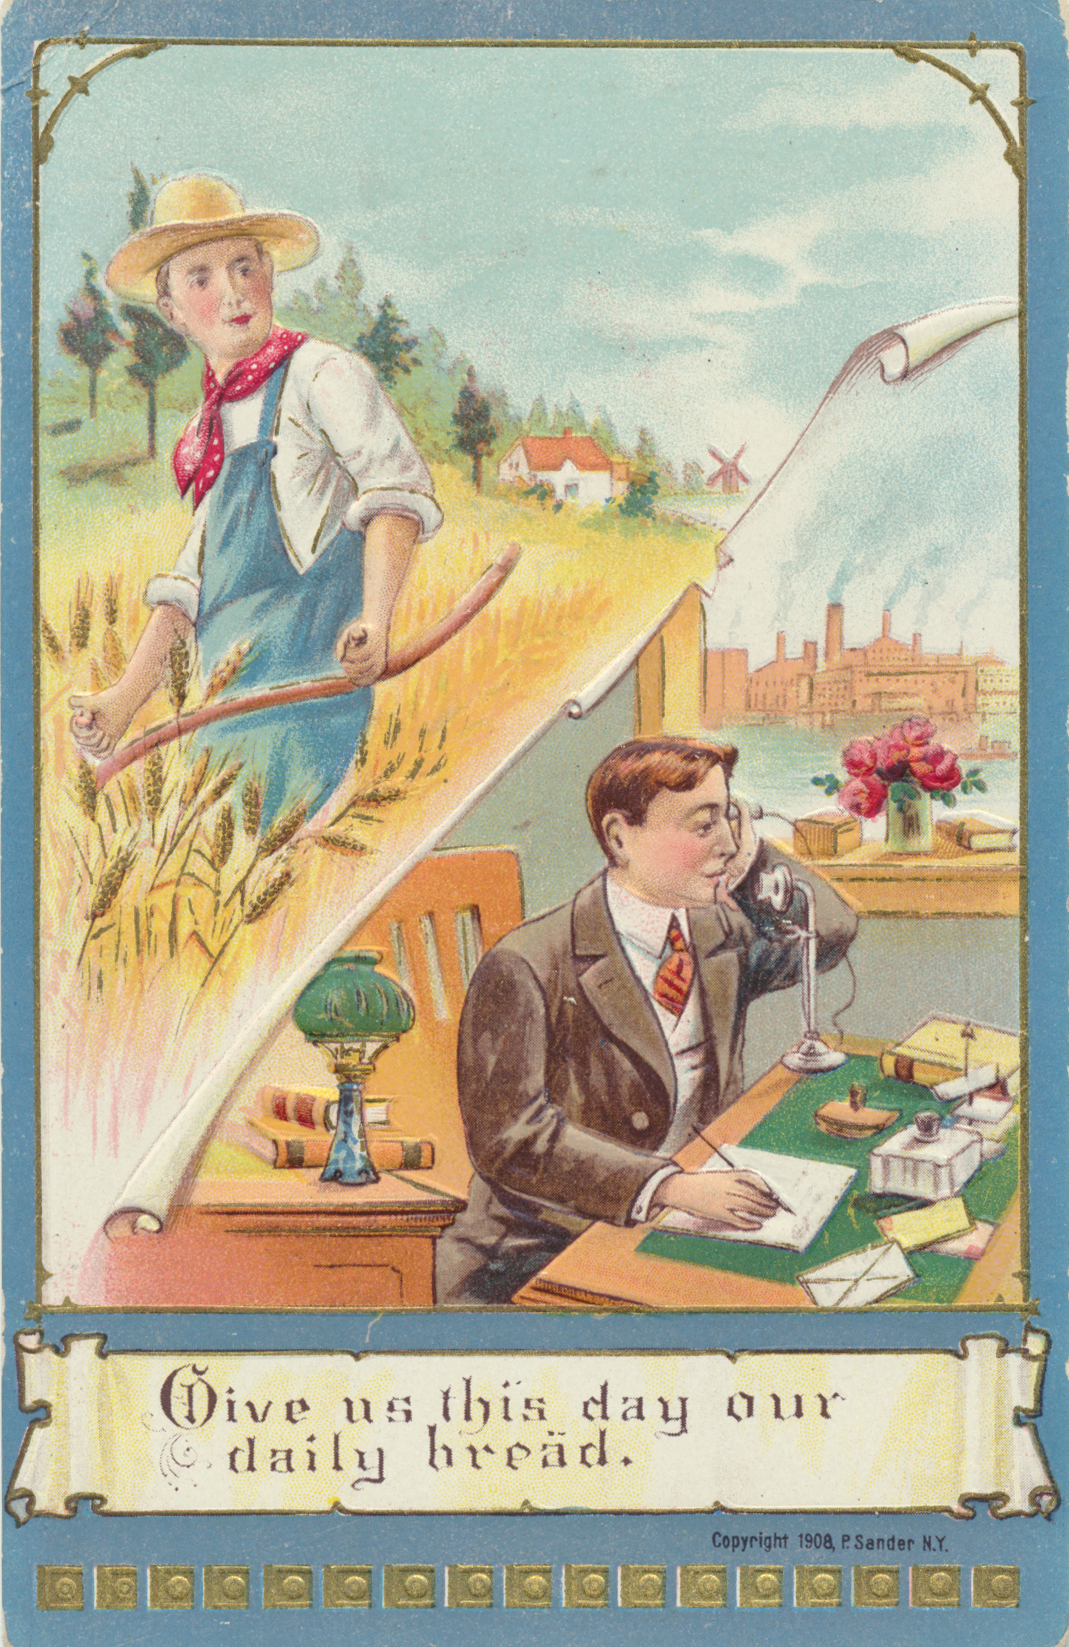 Lord's Prayer postcard printed by P. Sander, NY. 1908